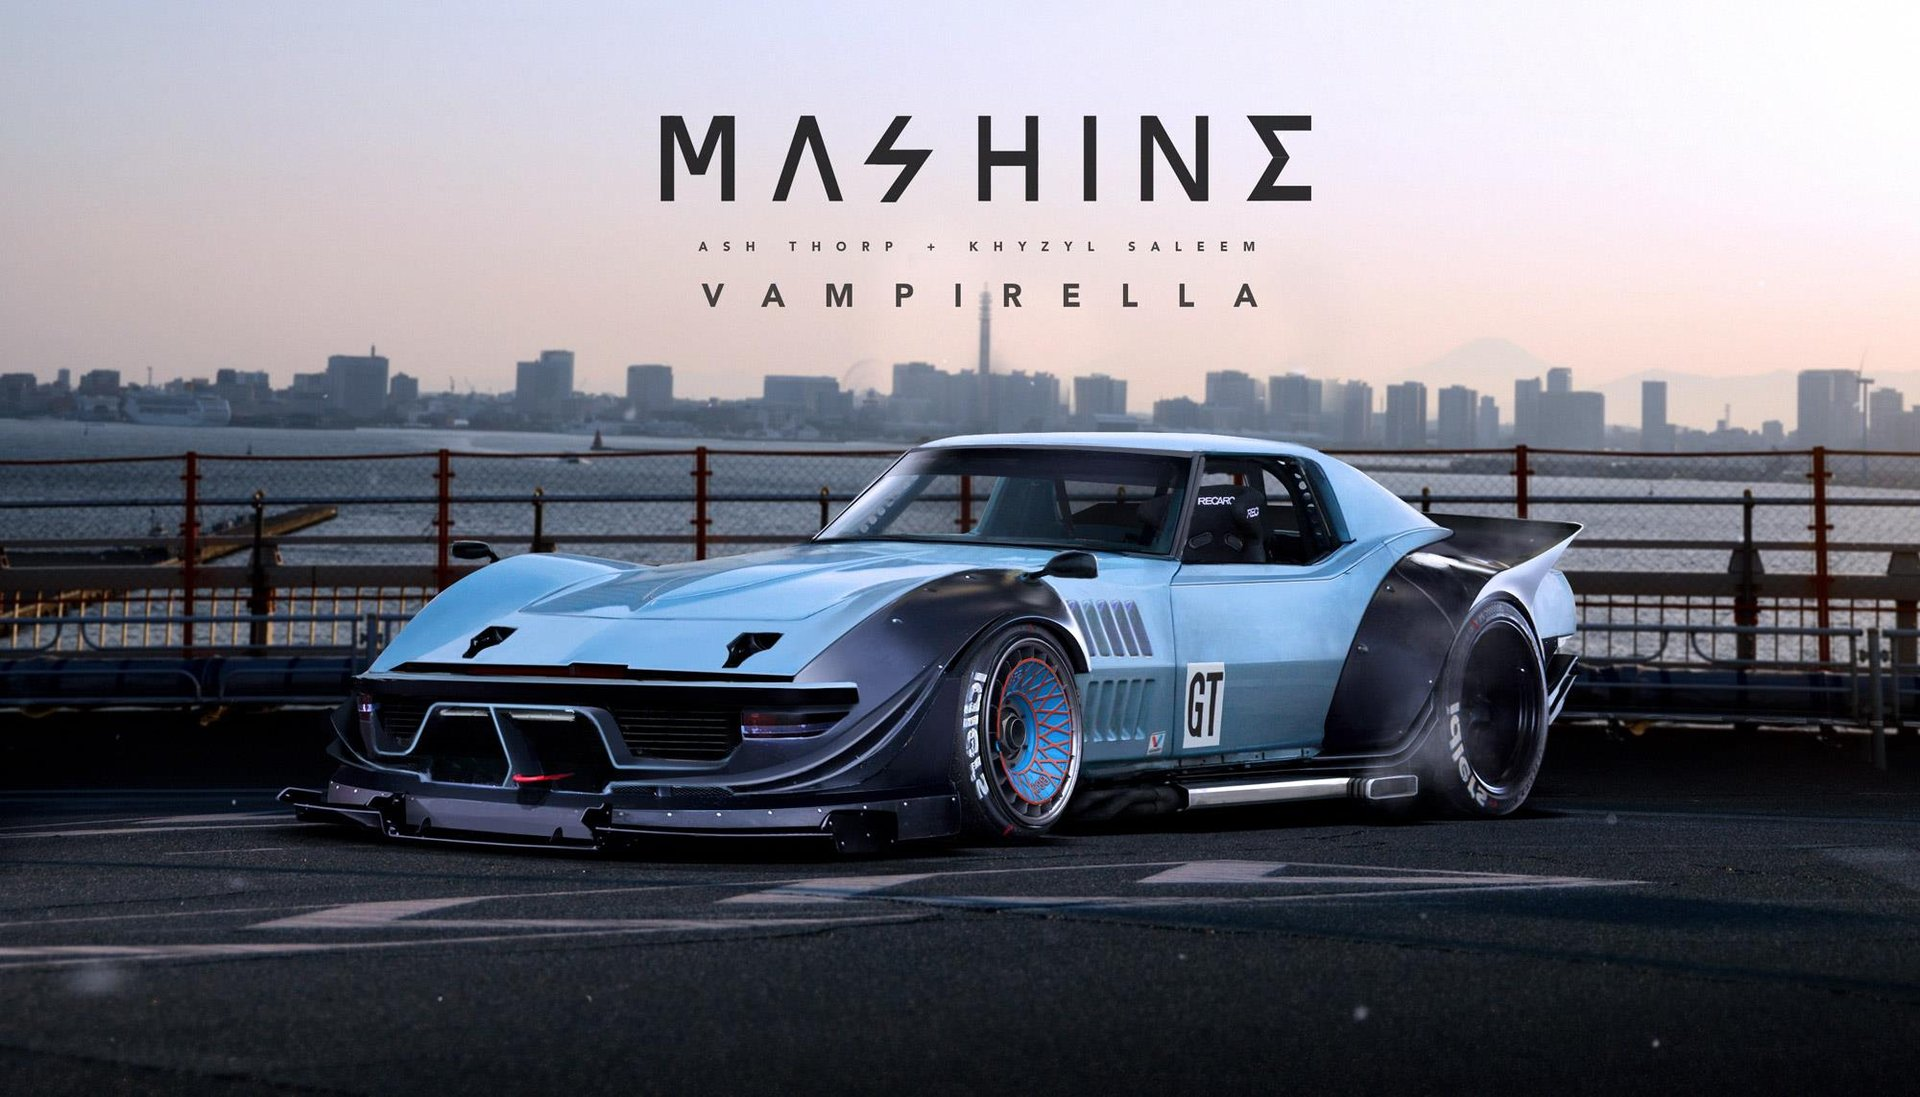 1960s Mustang Dodge Charger And Corvette C3 Rendered As